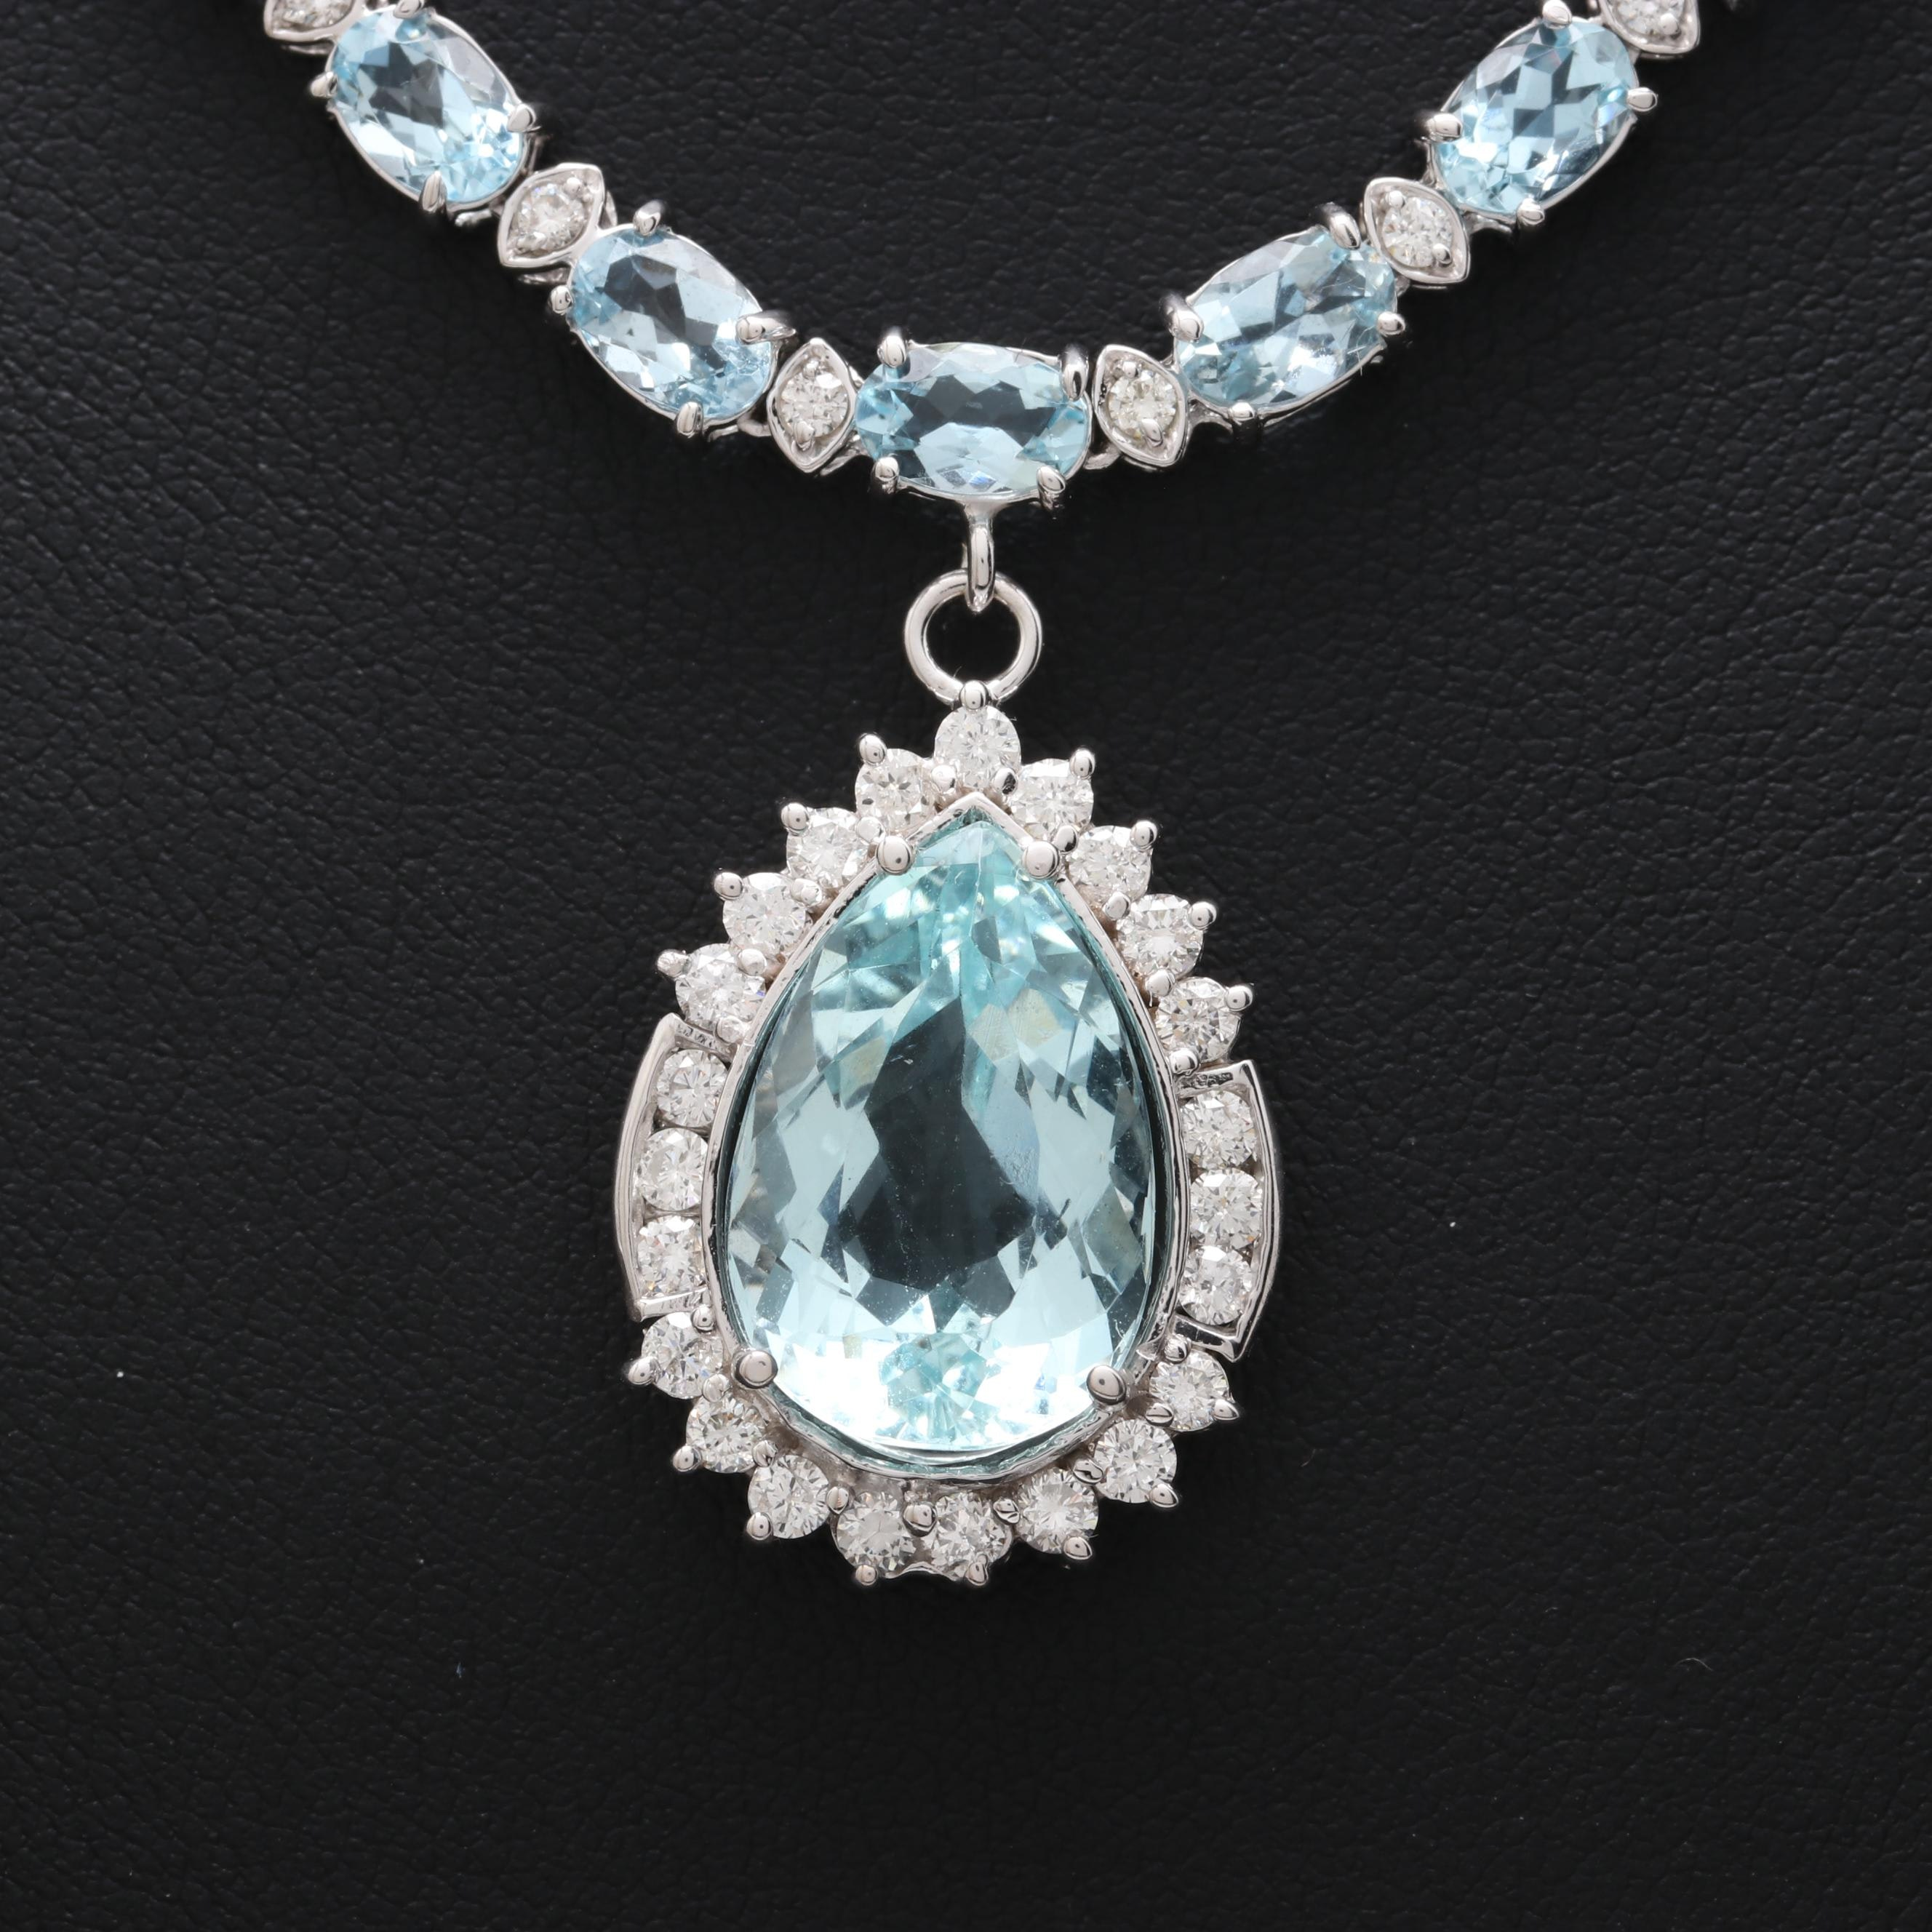 14K Gold Aquamarine and 2.04 CTW Diamond Necklace with 6.24 CT Center Stone